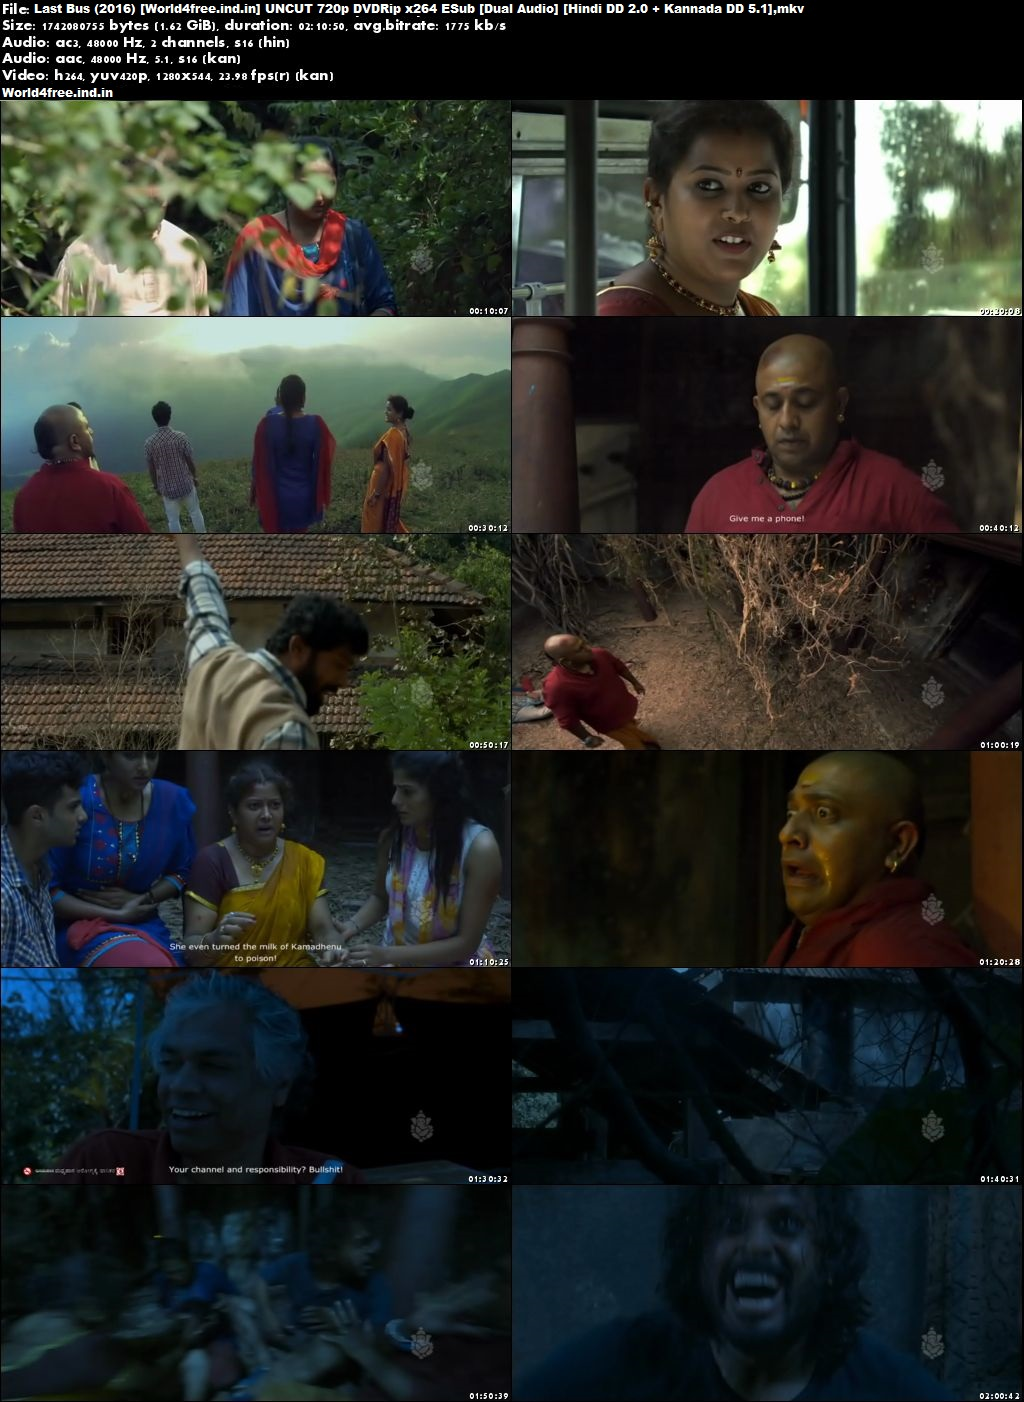 Last Bus 2016 worldfree4u Hindi Dubbed Movie Download 720p Dual Audio